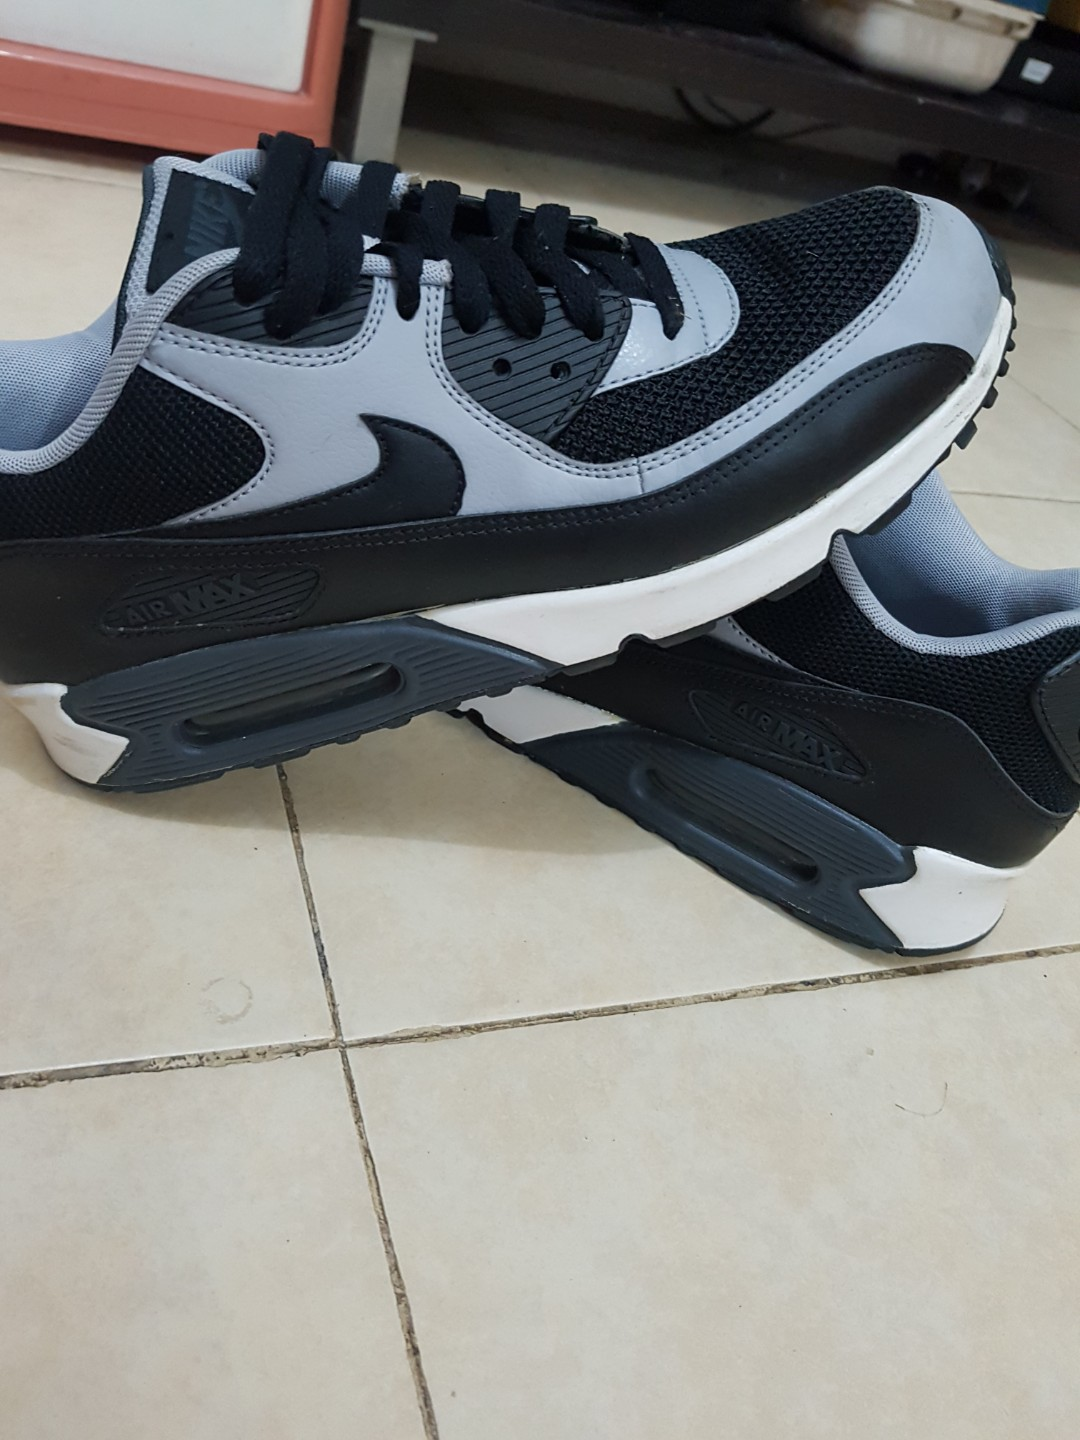 4591c70bb4 AUTHENTIC Nike Air Max, Men's Fashion, Footwear, Sneakers on Carousell